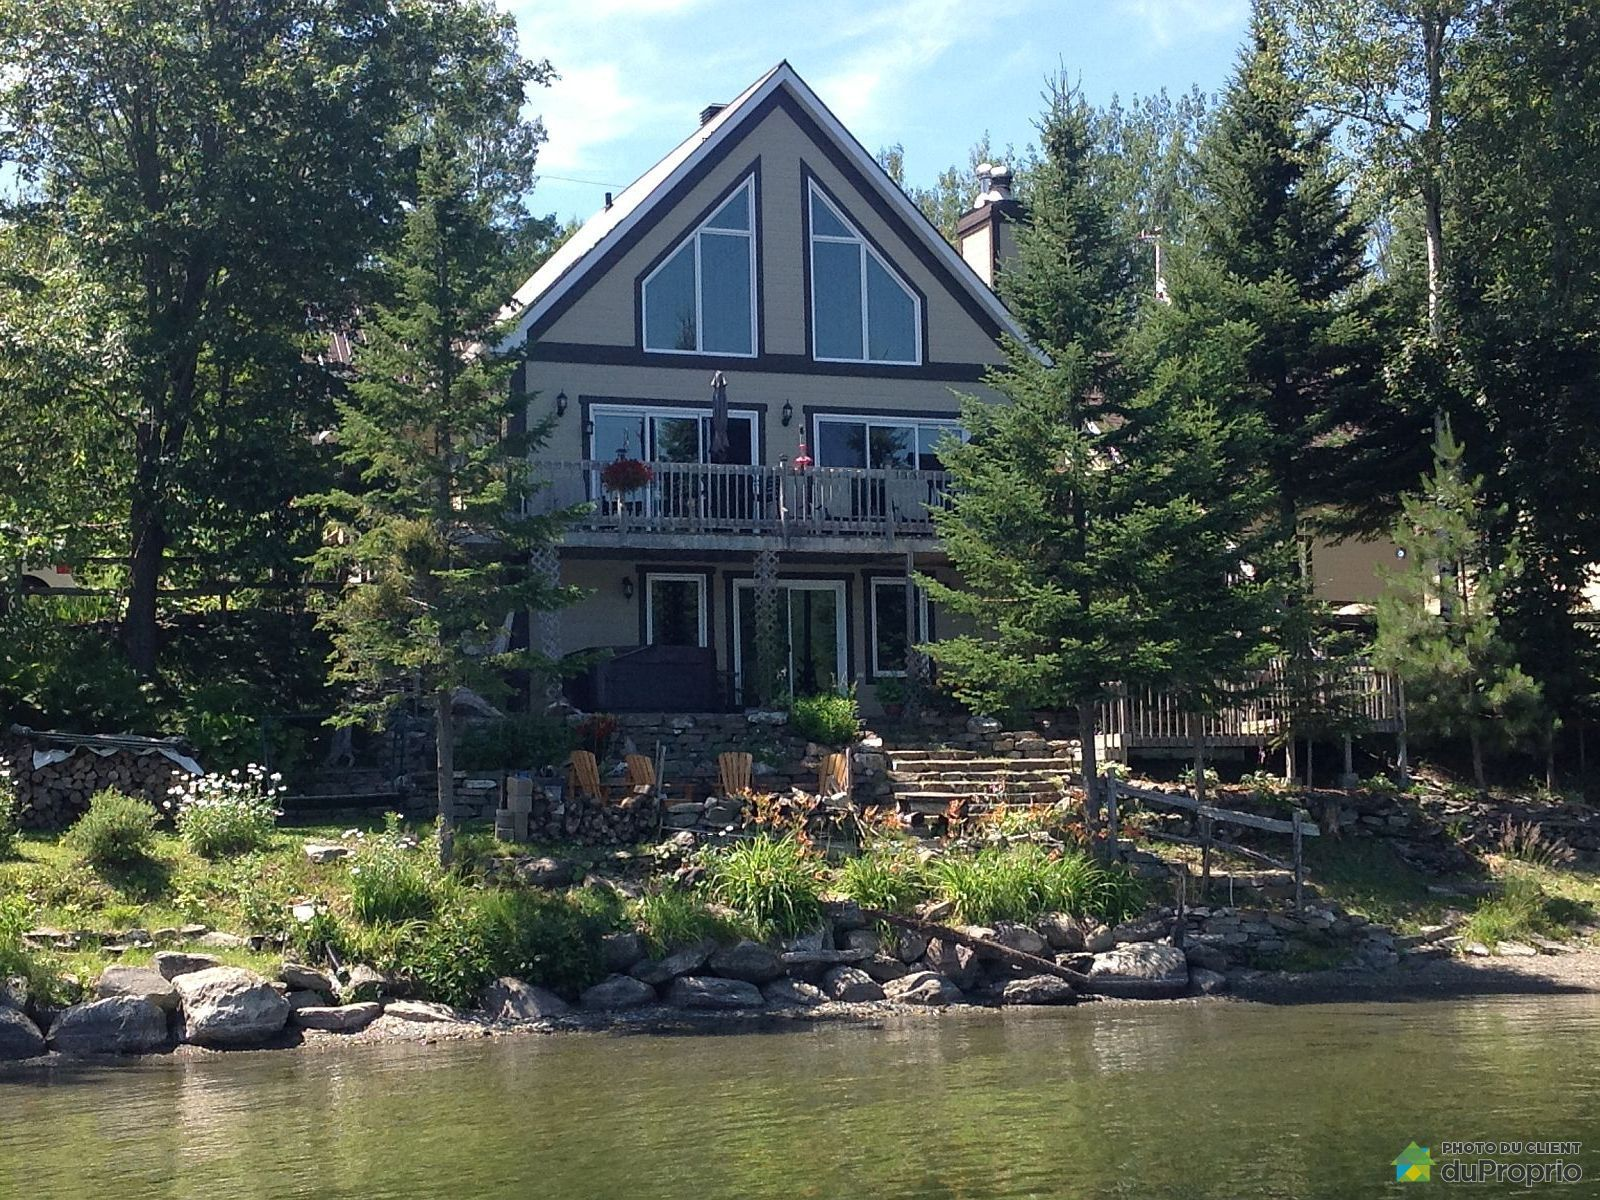 Waterfront - 641 5e Rang Sud, Packington for sale